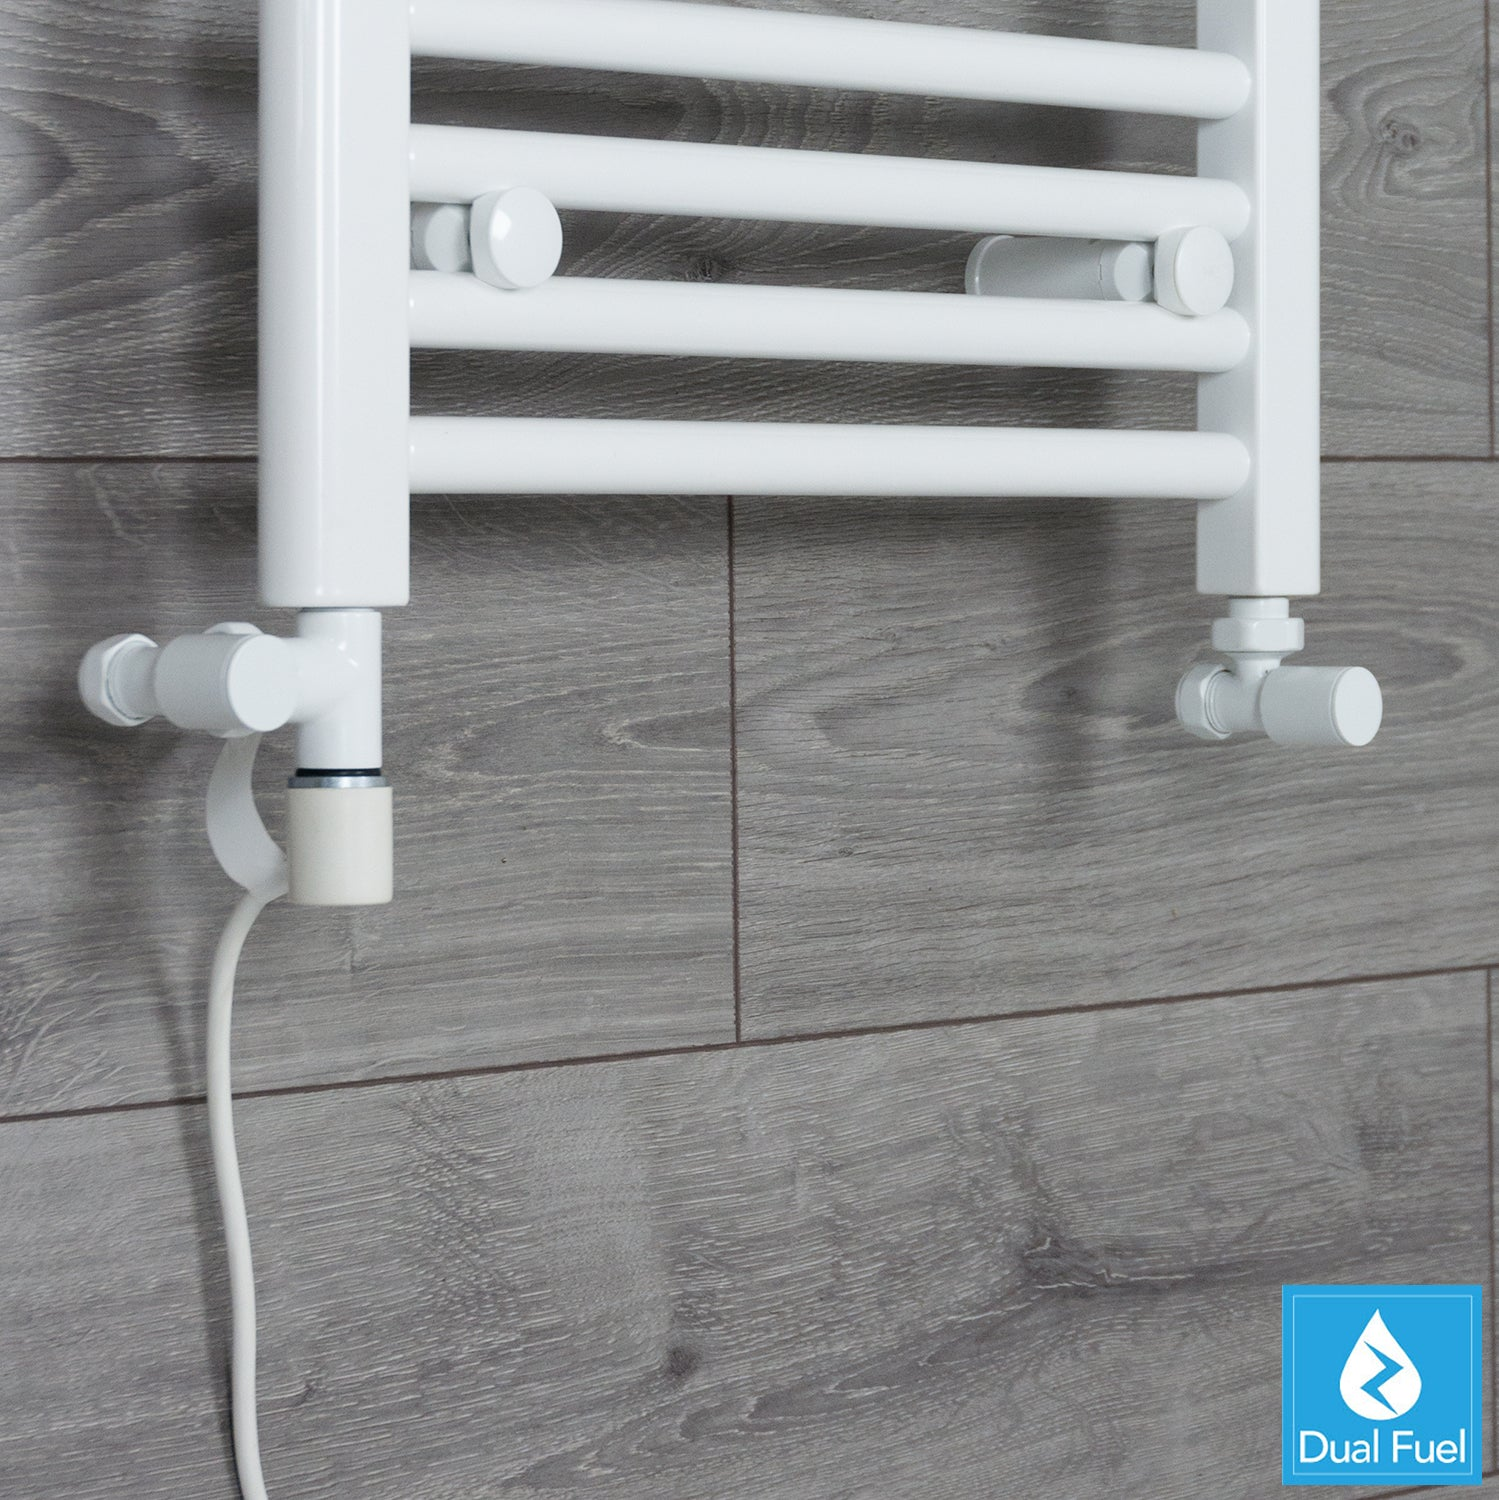 Dual Fuel Kit White Standard Heating Element - For Heated Towel Rail Radiator